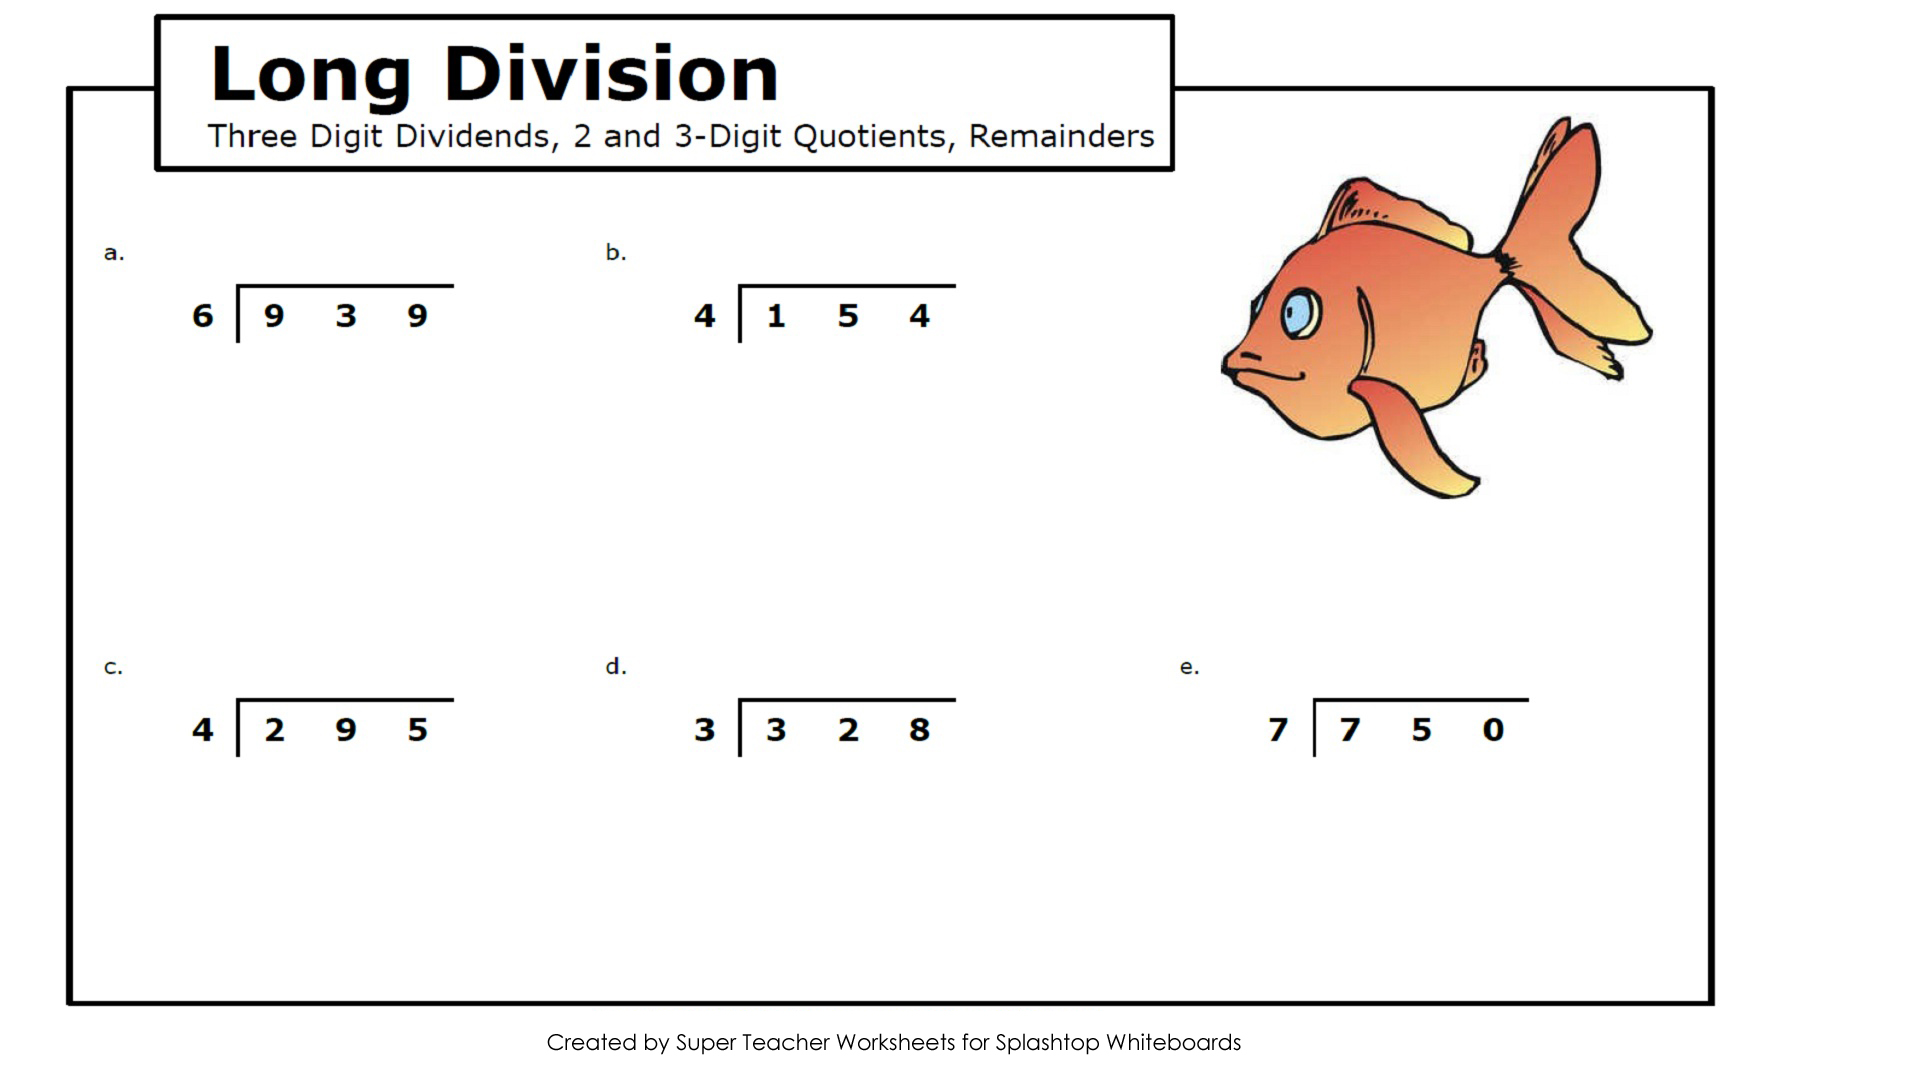 Long Division Worksheet For Grade 2